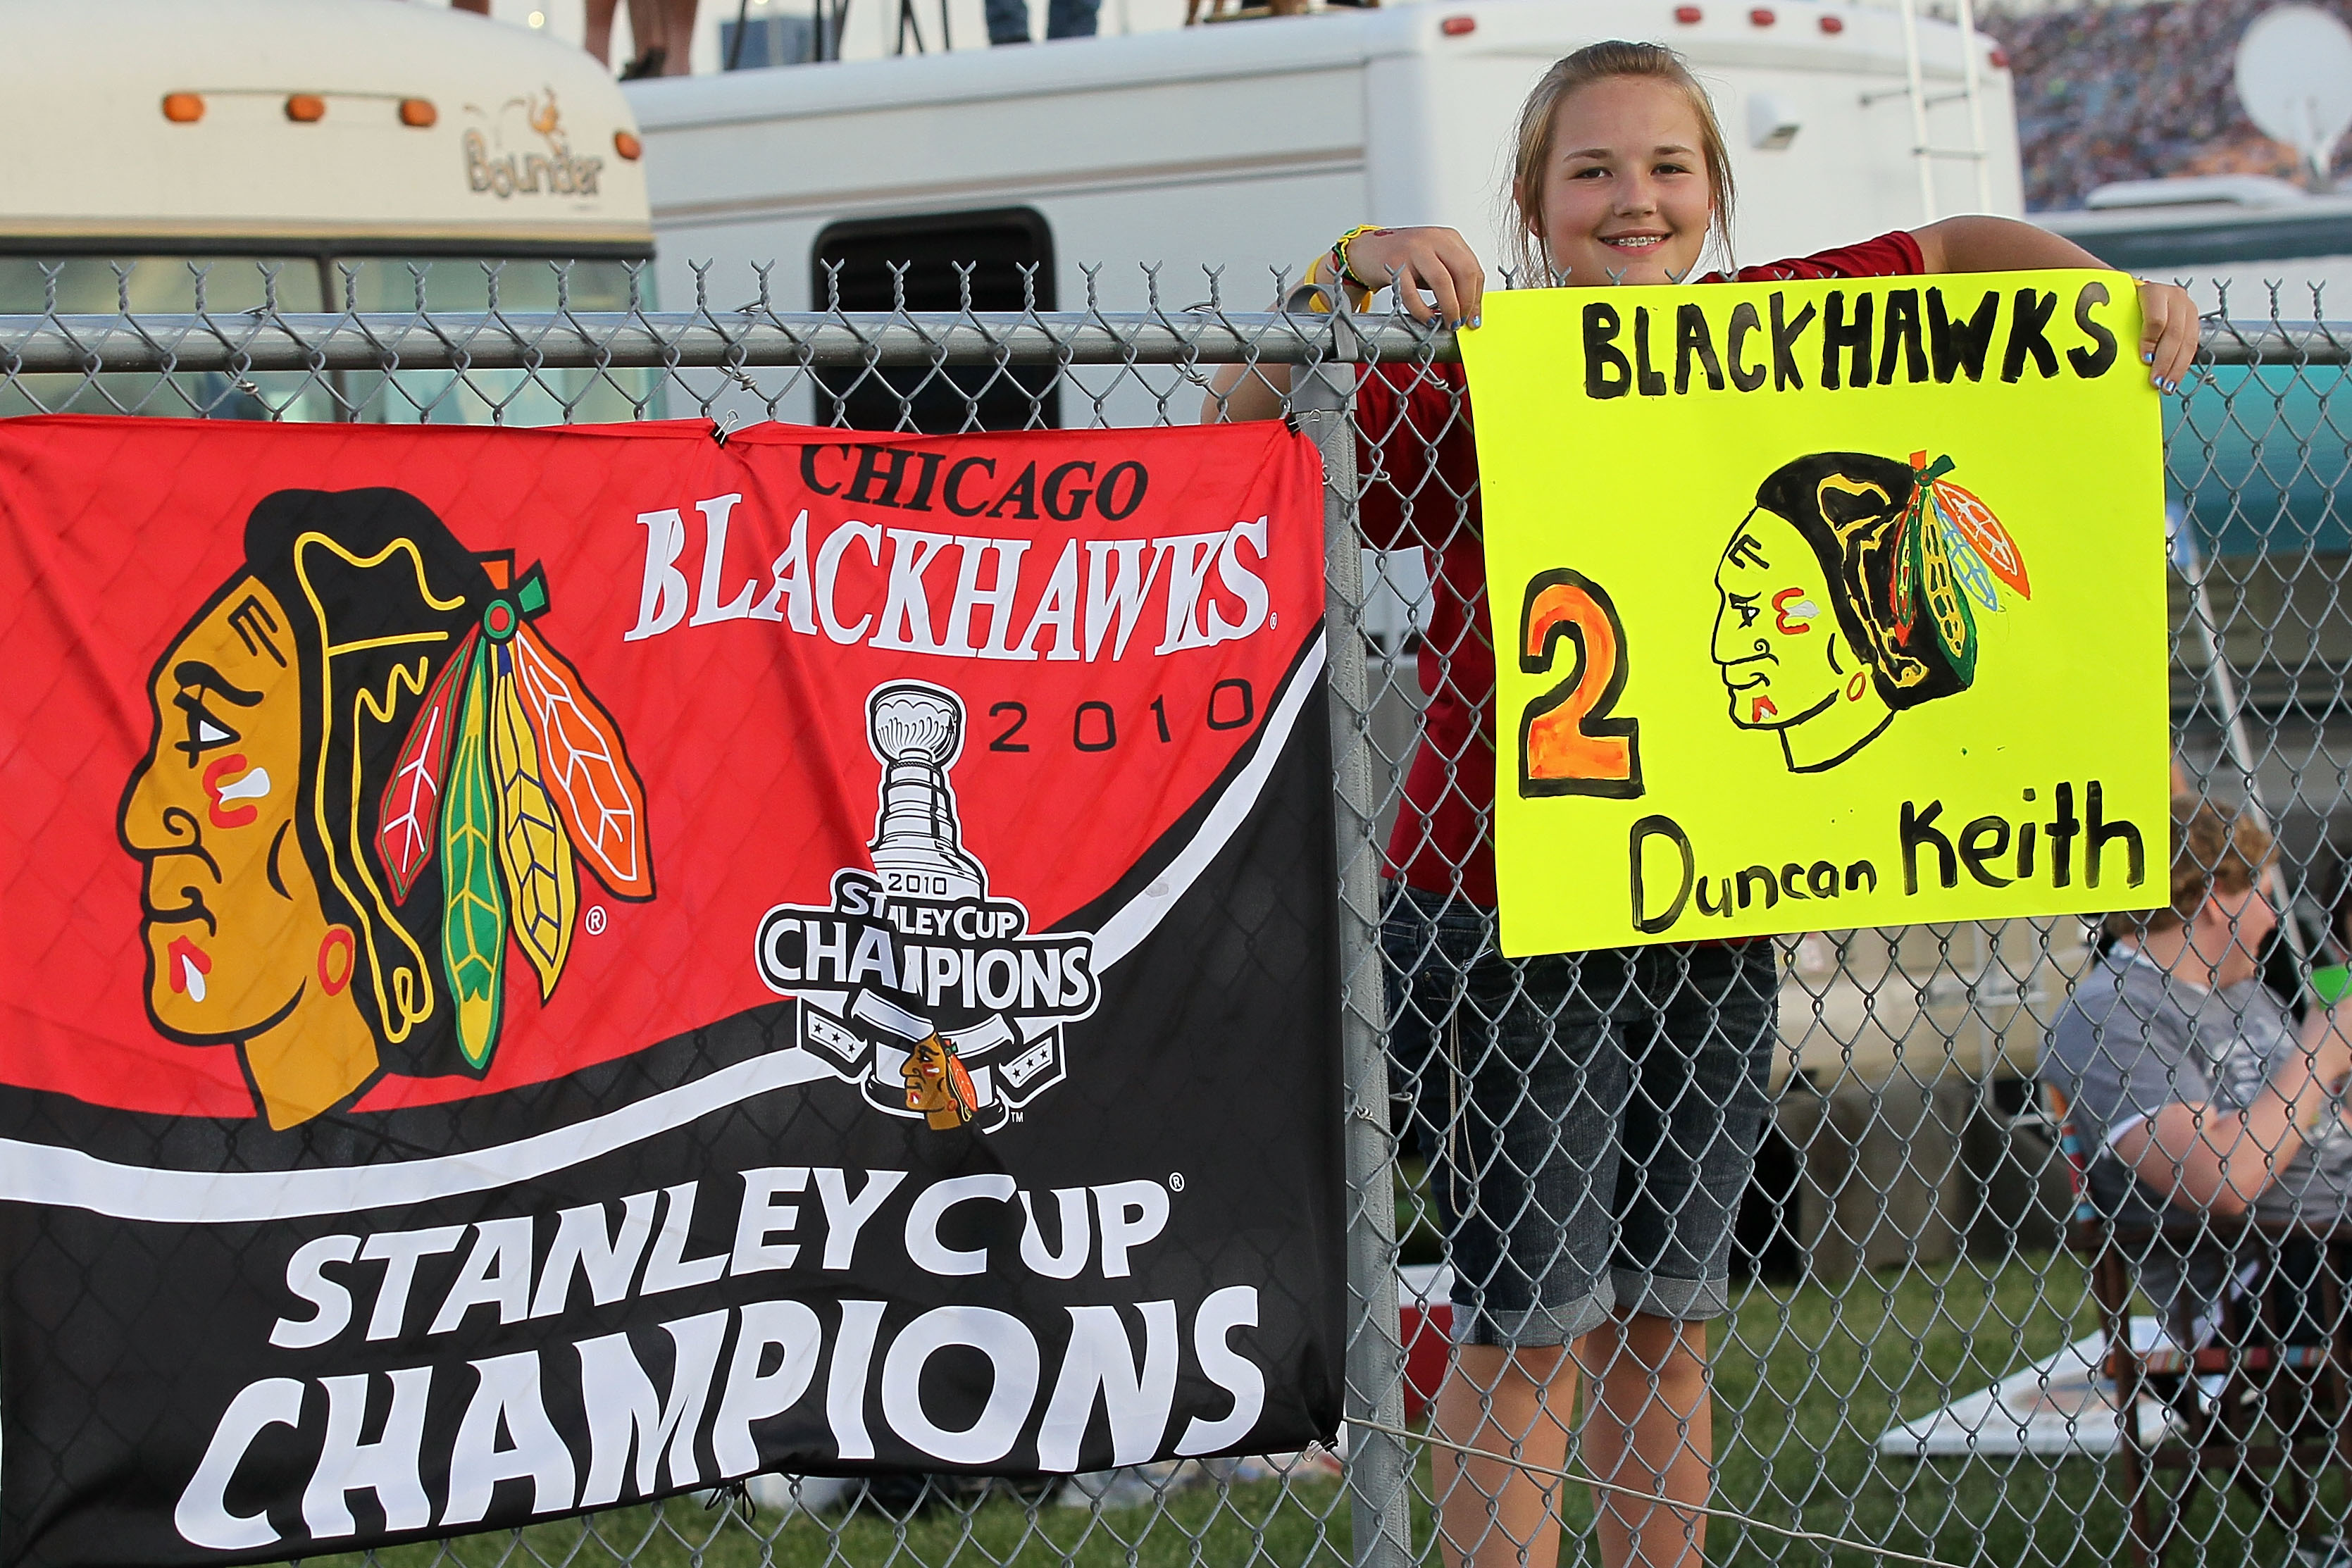 JOLIET, IL - JULY 10:  Nascar fans show support for Duncan Keith of the NYL's Chicago Blackhawks during the NASCAR Sprint Cup Series LIFELOCK.COM 400 at the Chicagoland Speedway on July 10, 2010 in Joliet, Illinois.  (Photo by Andy Lyons/Getty Images)